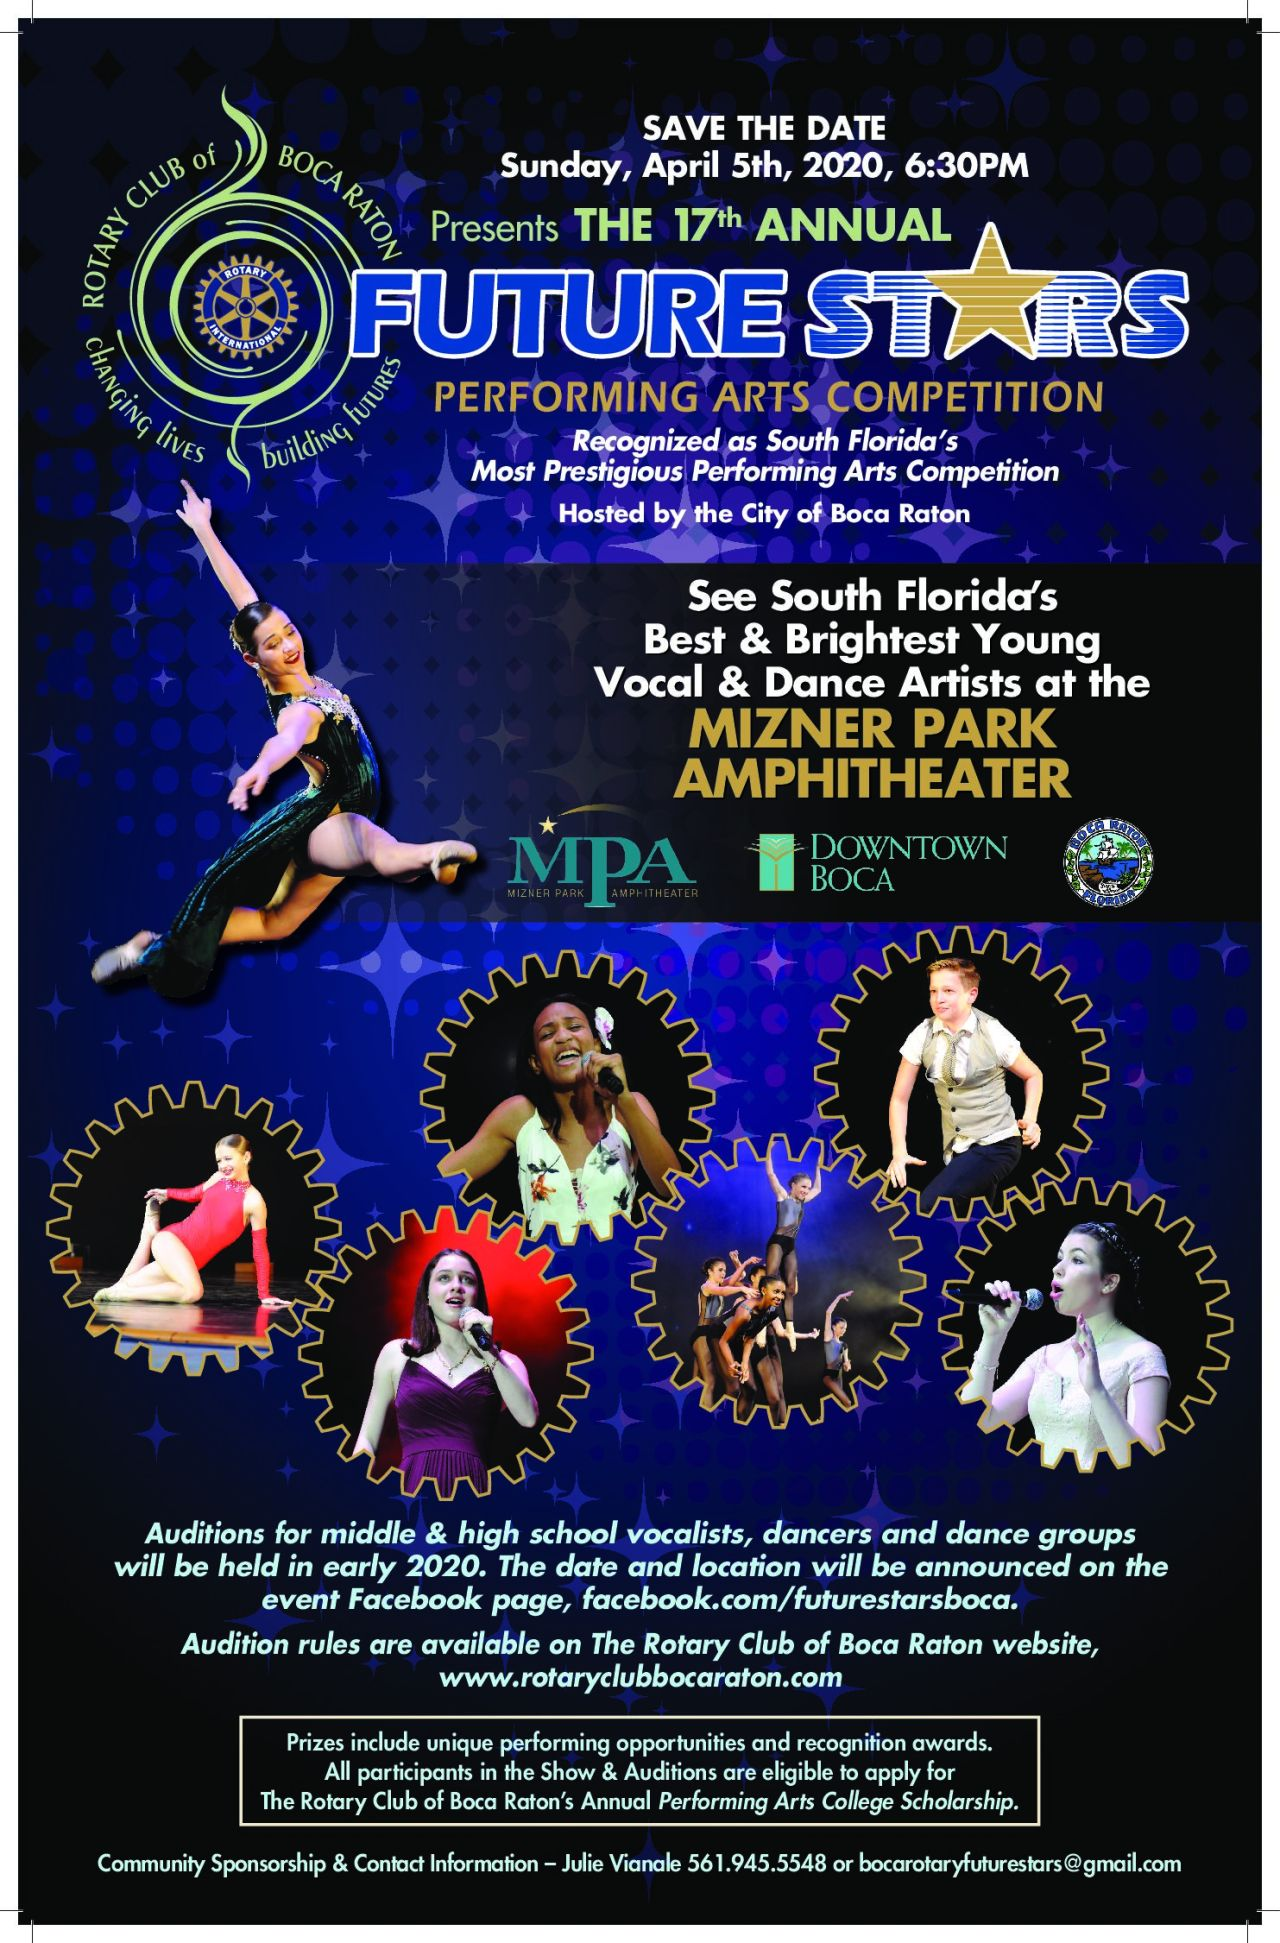 17th Annual Future Stars Performing Art S Competition The Rotary Club Of Boca Raton